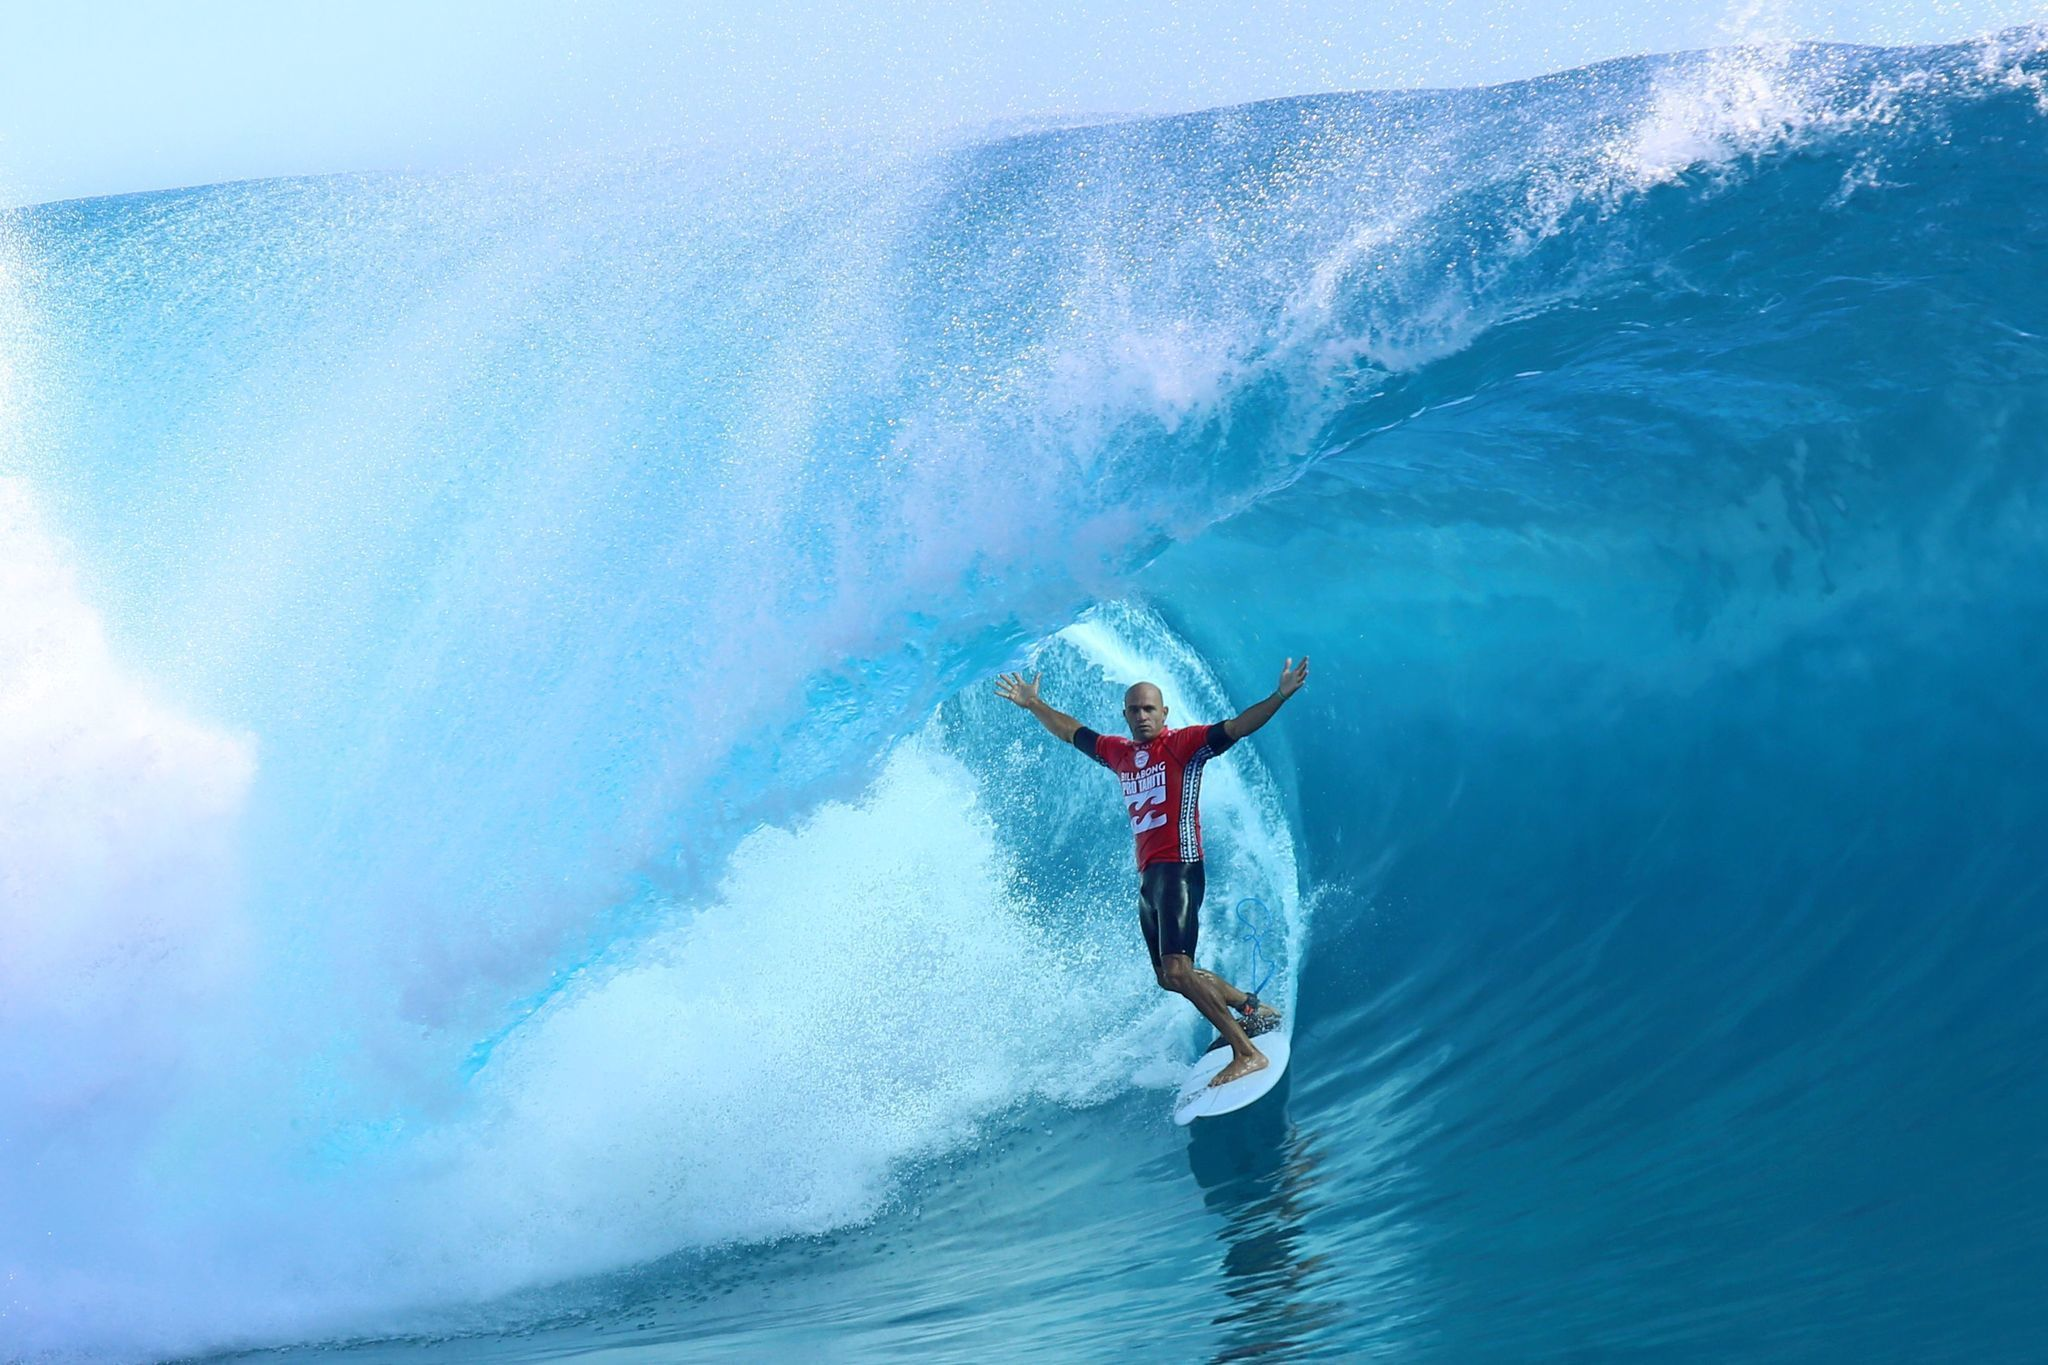 Surf legend Kelly Slater aims to bring wave park to Palm Beach